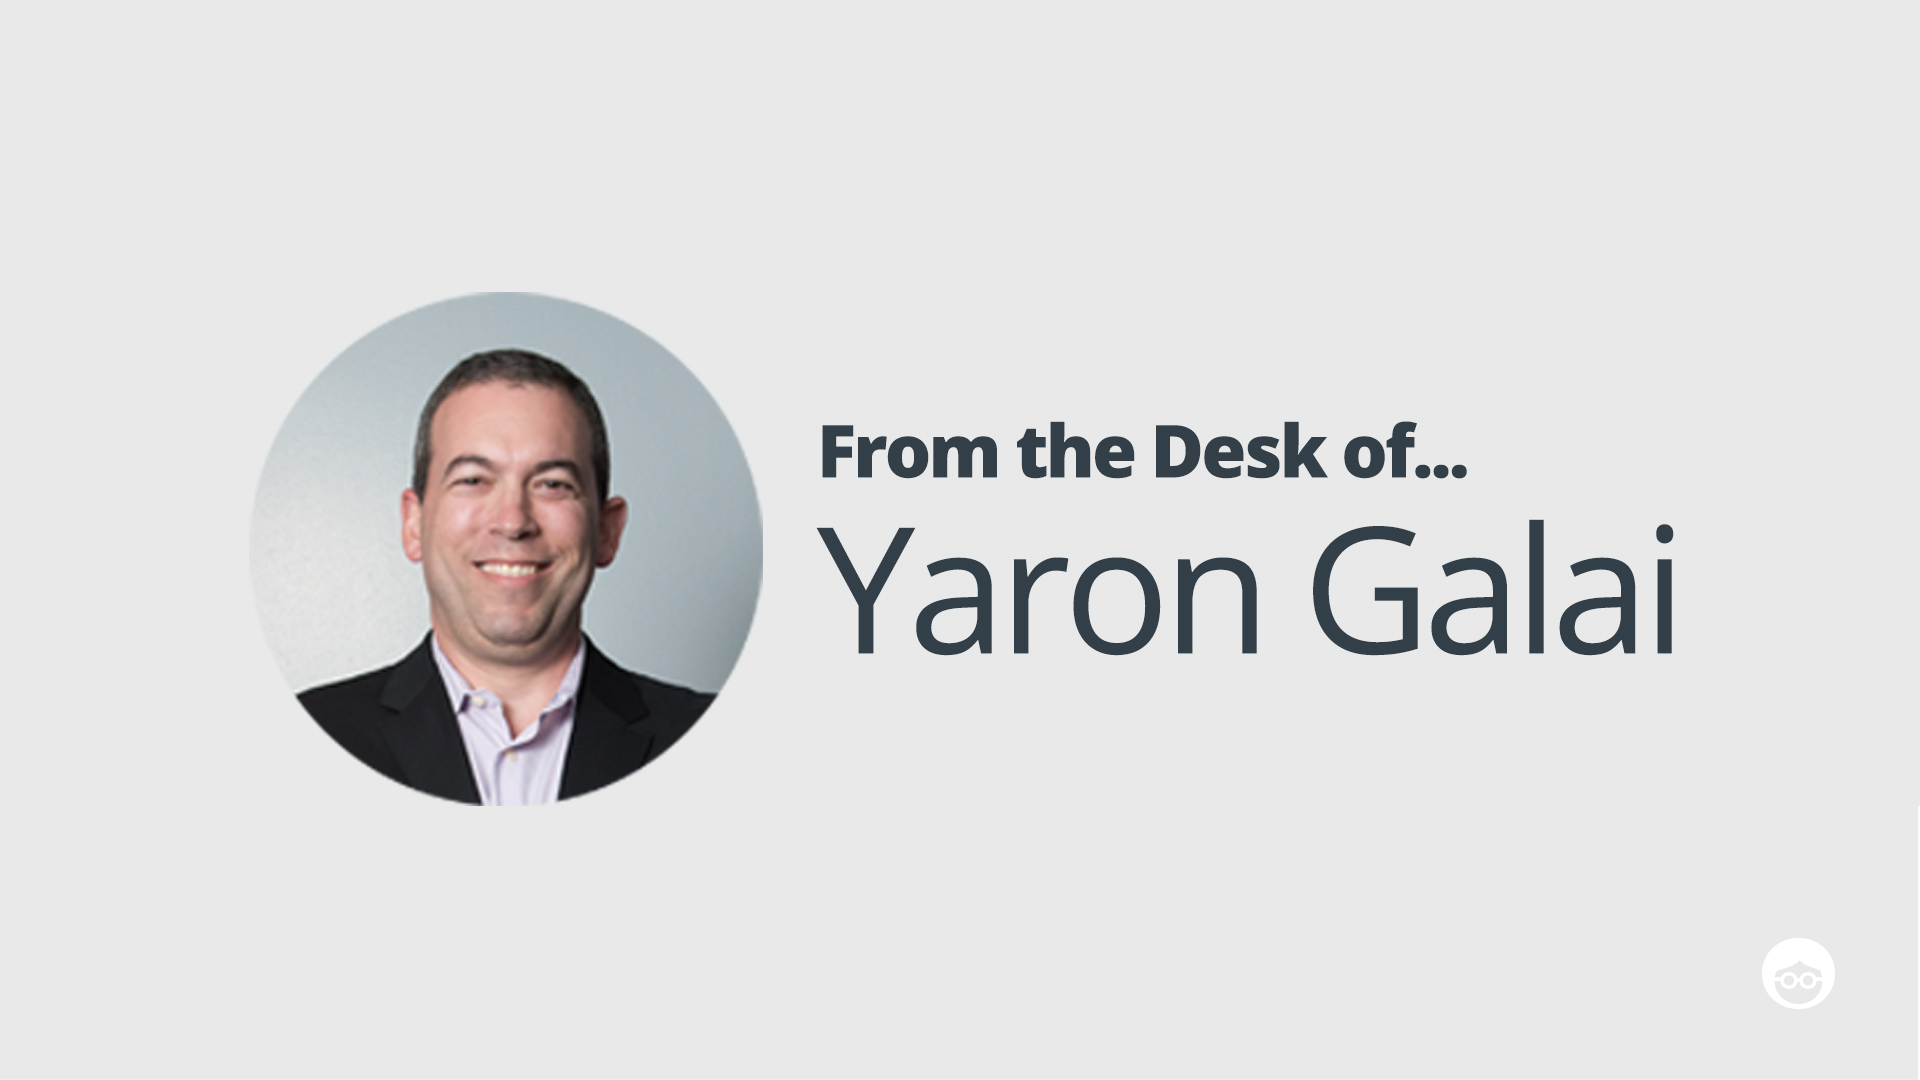 From the desk of Yaron Galai